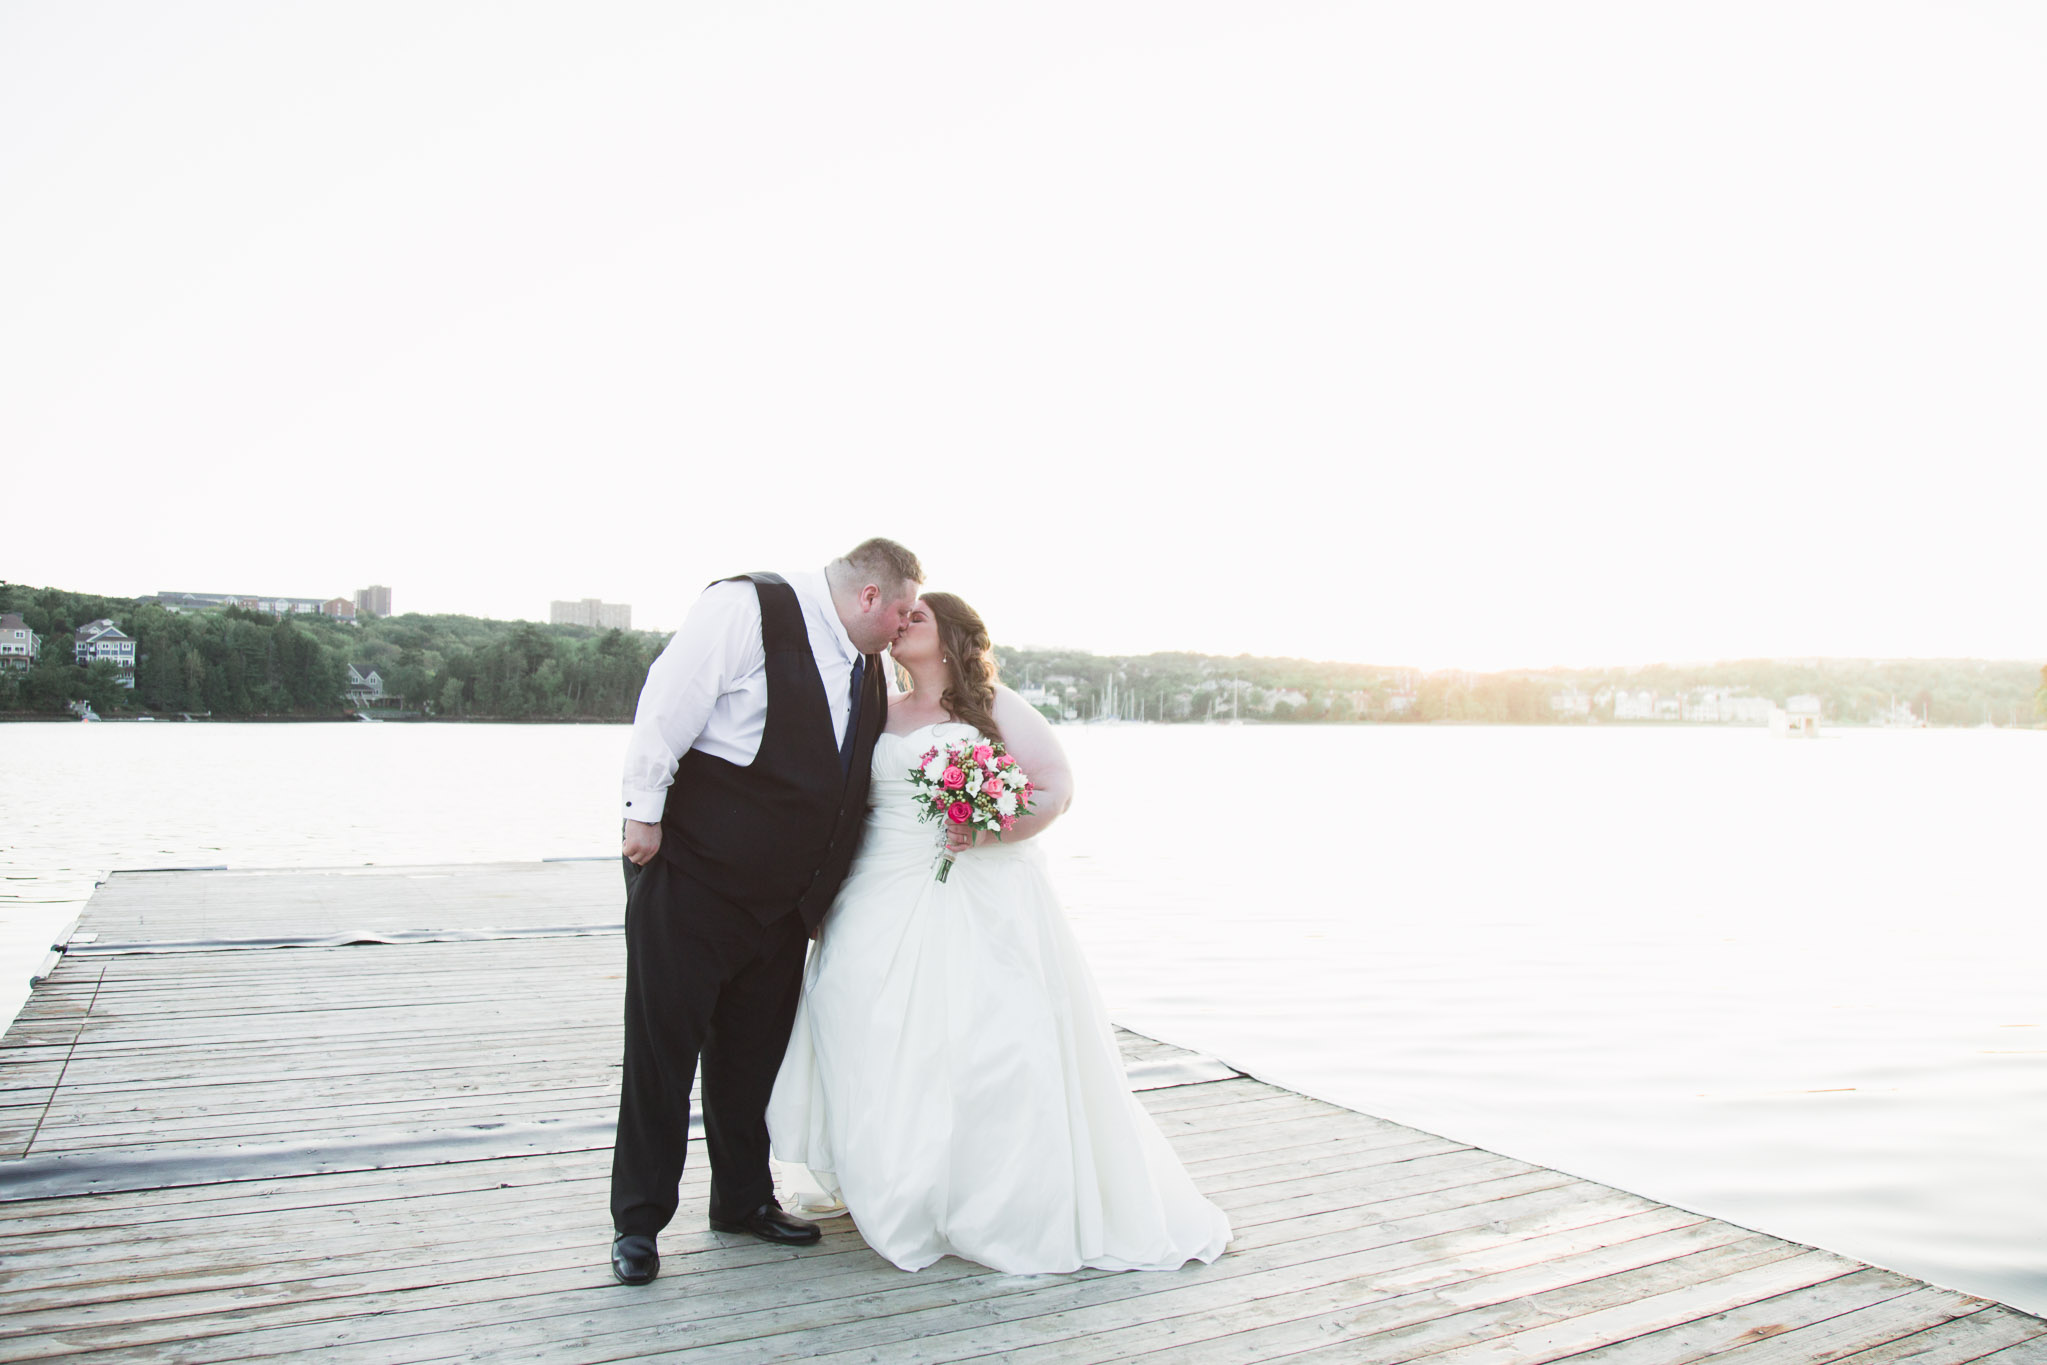 Bride and groom standing on the dock and kissing